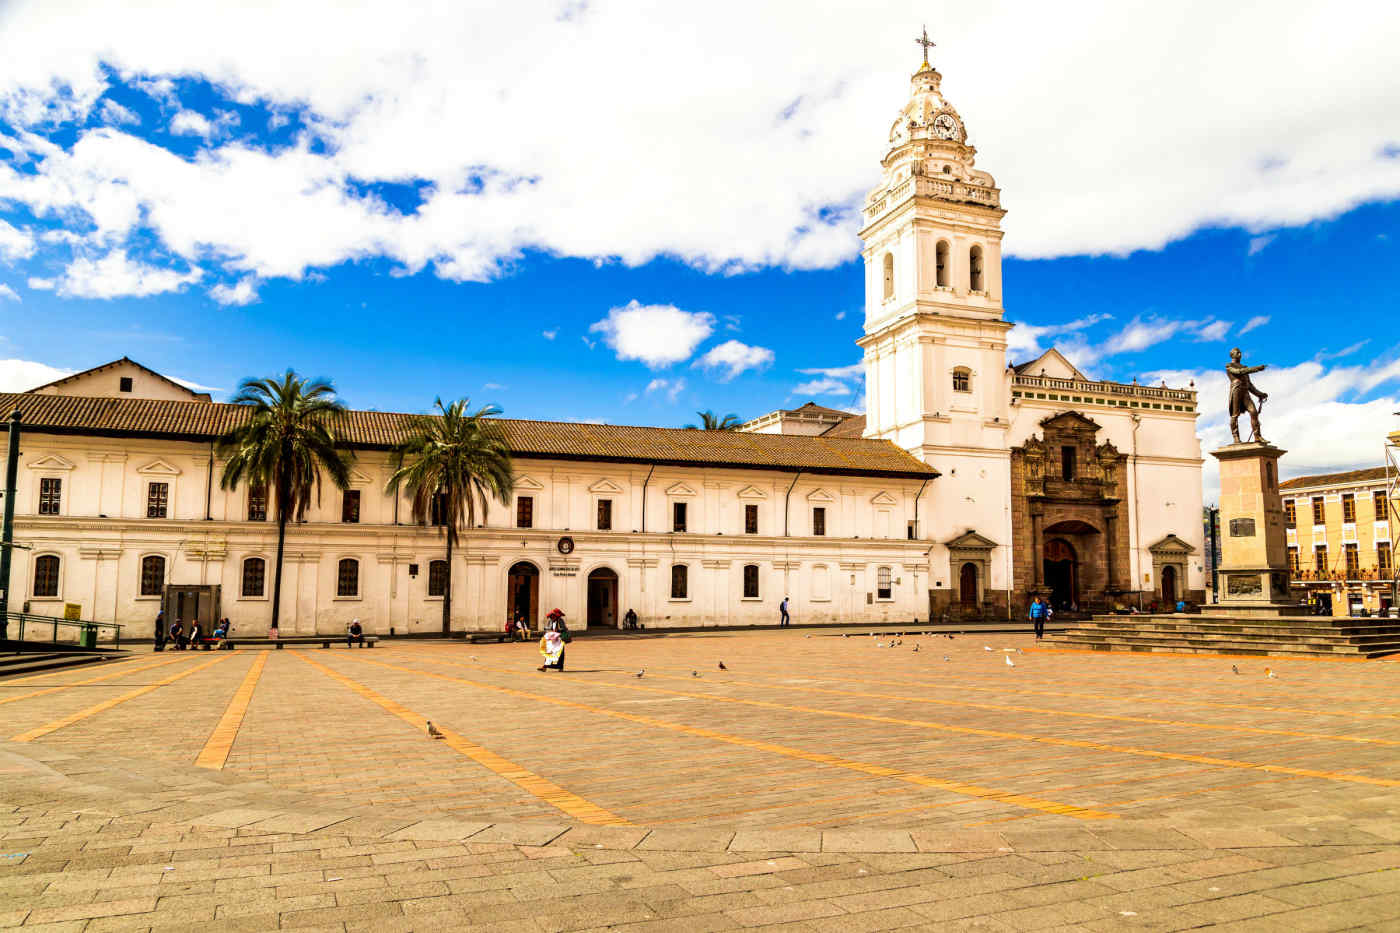 Plaza Santo Domingo in Quito